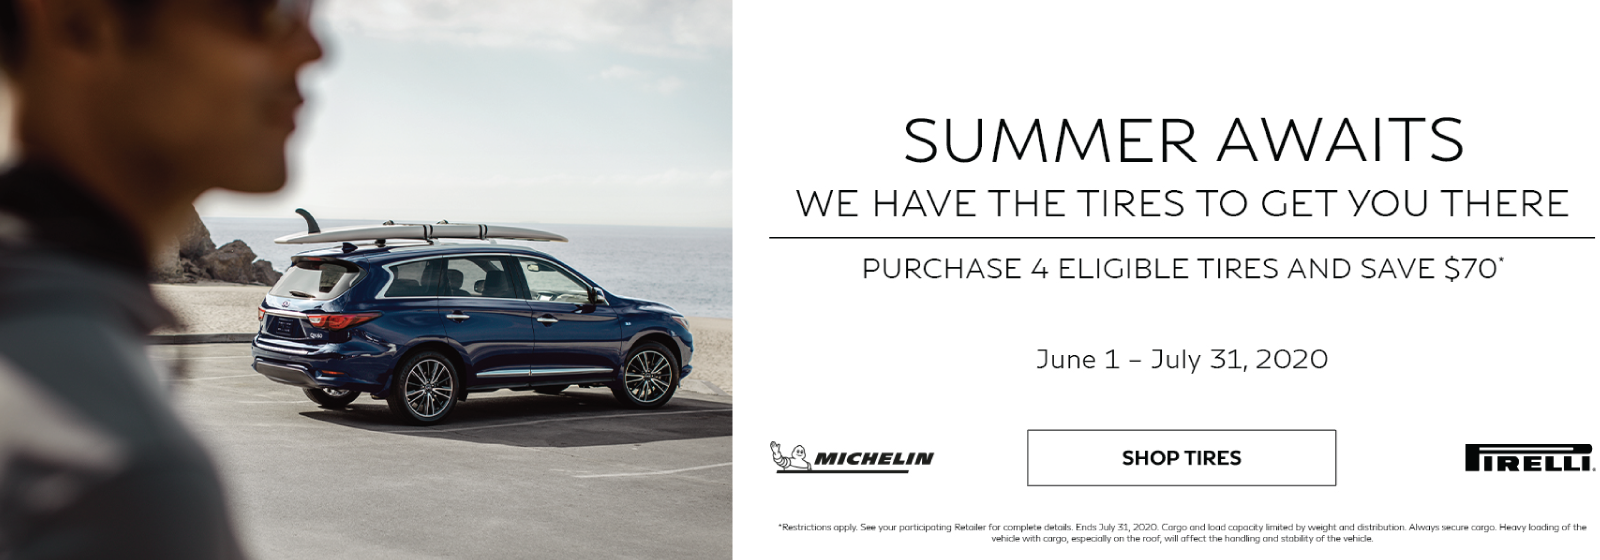 Summer Awaits! We have the tires to get you there. Purchase 4 Eligible Tires and Save $70. Offer expires July 31, 2020. Click to shop tires.